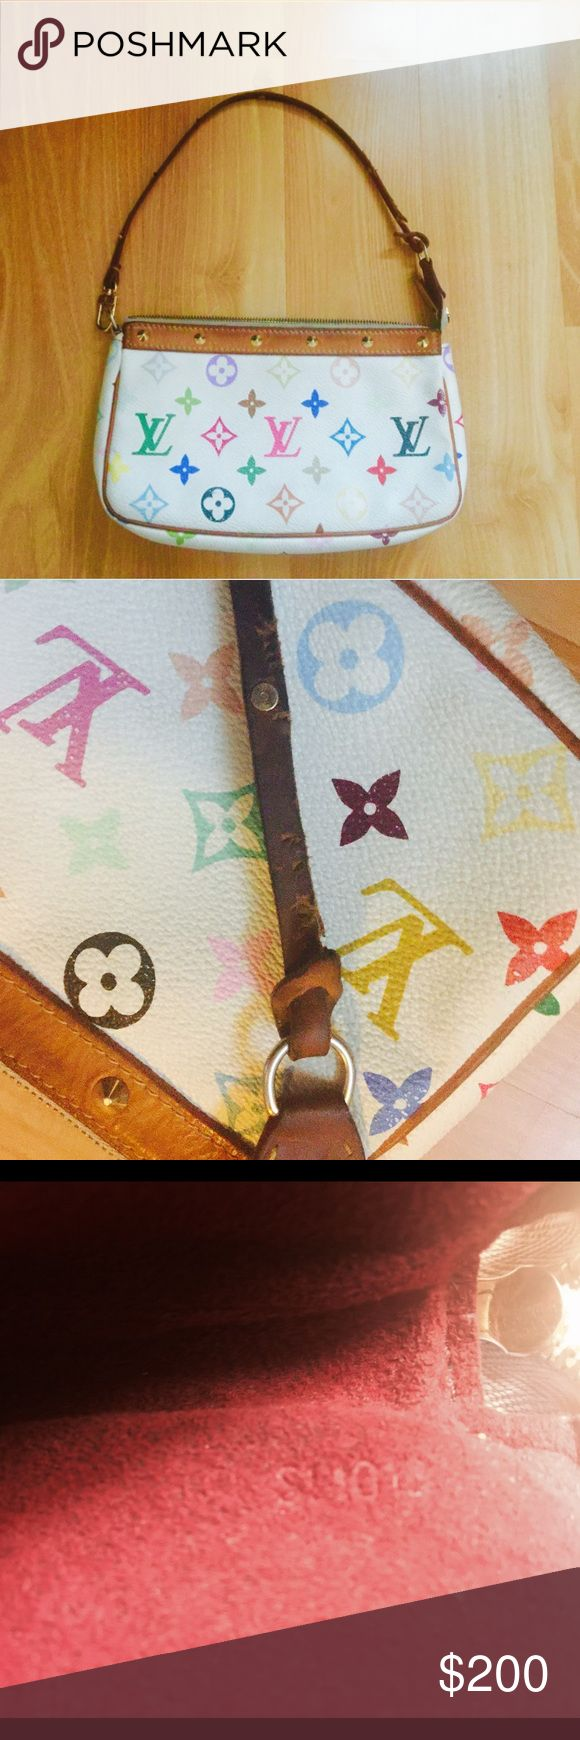 Authentic Louis Vuitton clutch pouch bag purse 100% Authentic Louis Vuitton LV multicolor pouch bag purse handbag. Please look carefully pictures because there is definitely quite a bit of wear/ use one the strap. The bag is good condition. Date code: SL1013 Made in France Louis Vuitton Bags Clutches & Wristlets